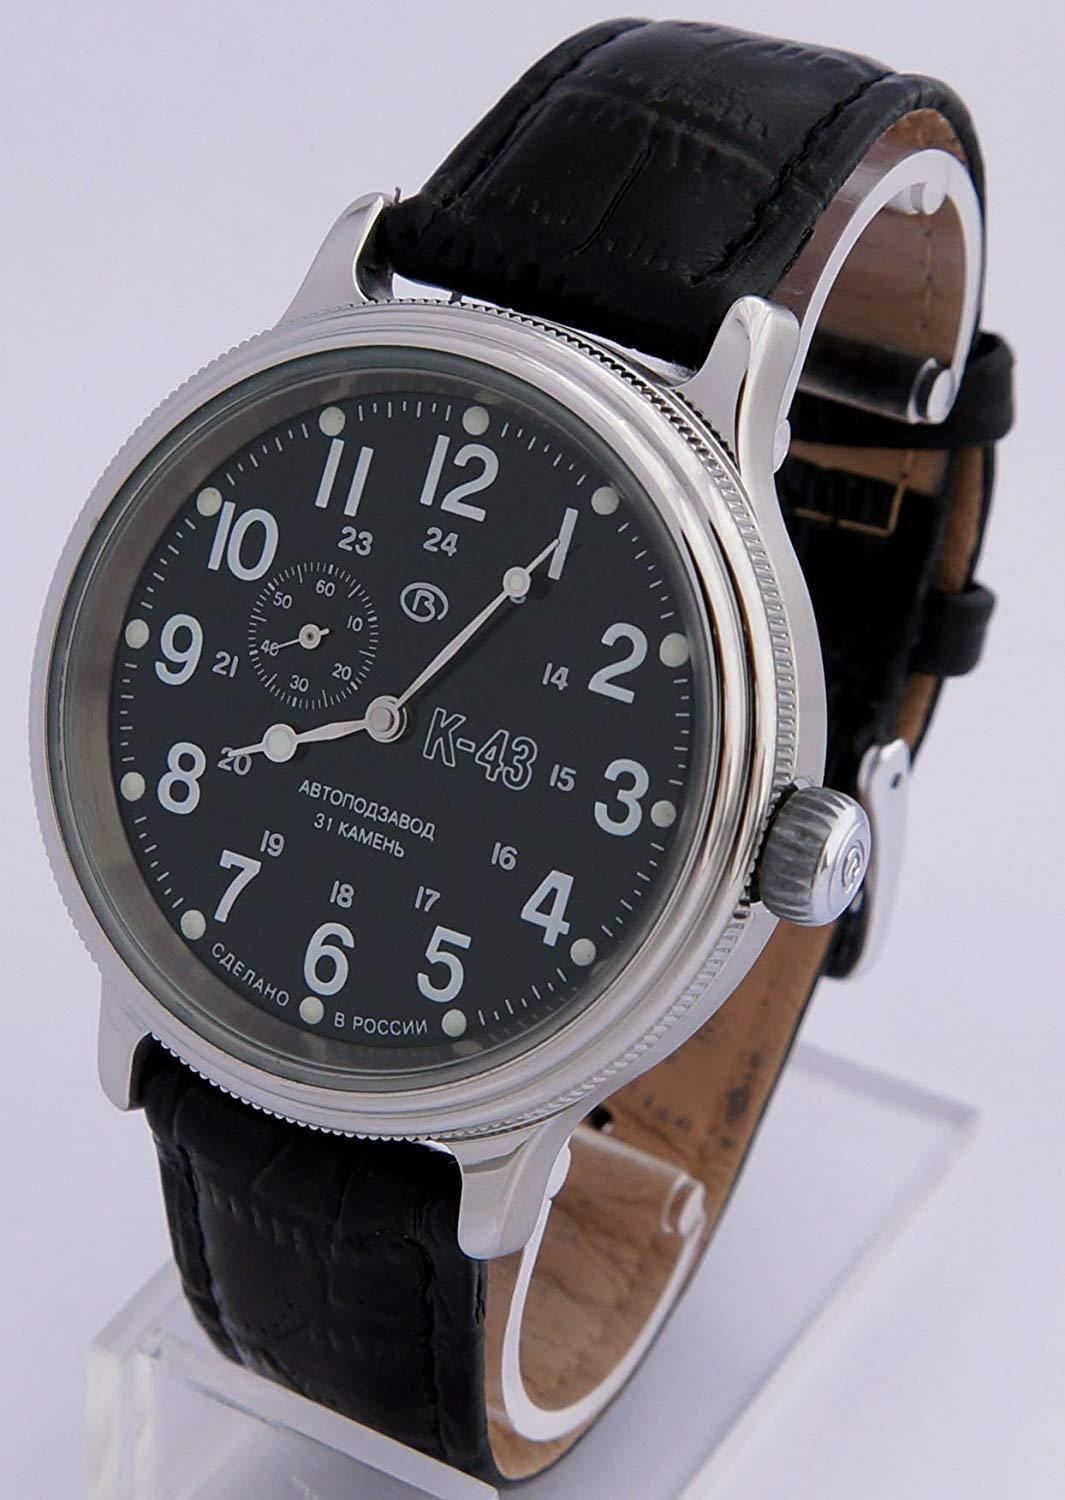 Vostok Retro Kirovskie K43 540854 /2415 Russian Classic Watch Black 1943 image 2